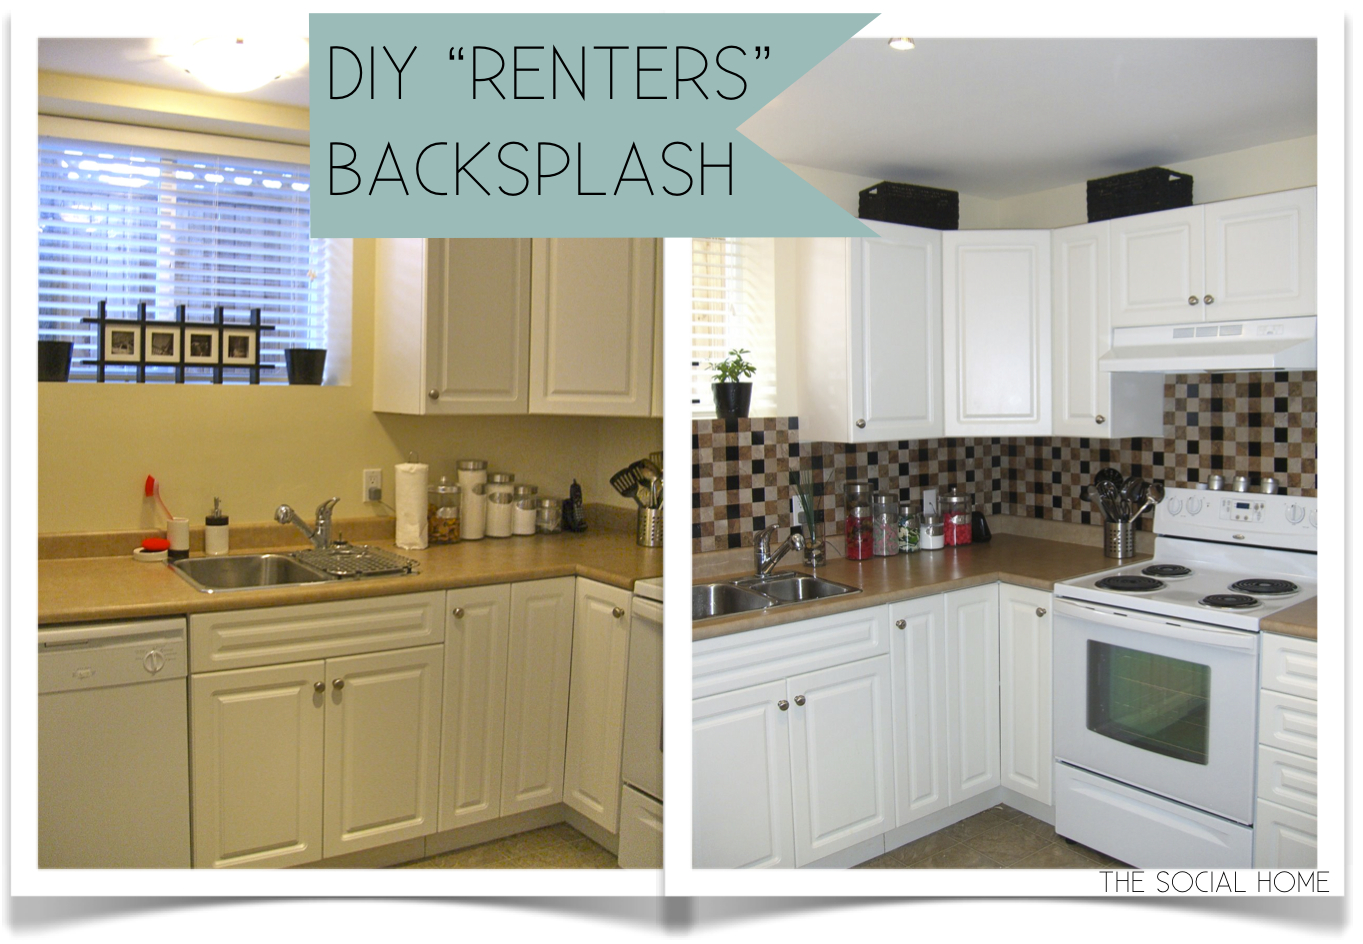 Diy Tile Backsplash Kitchen The Social Home Diy Renters Backsplash With Vinyl Tile